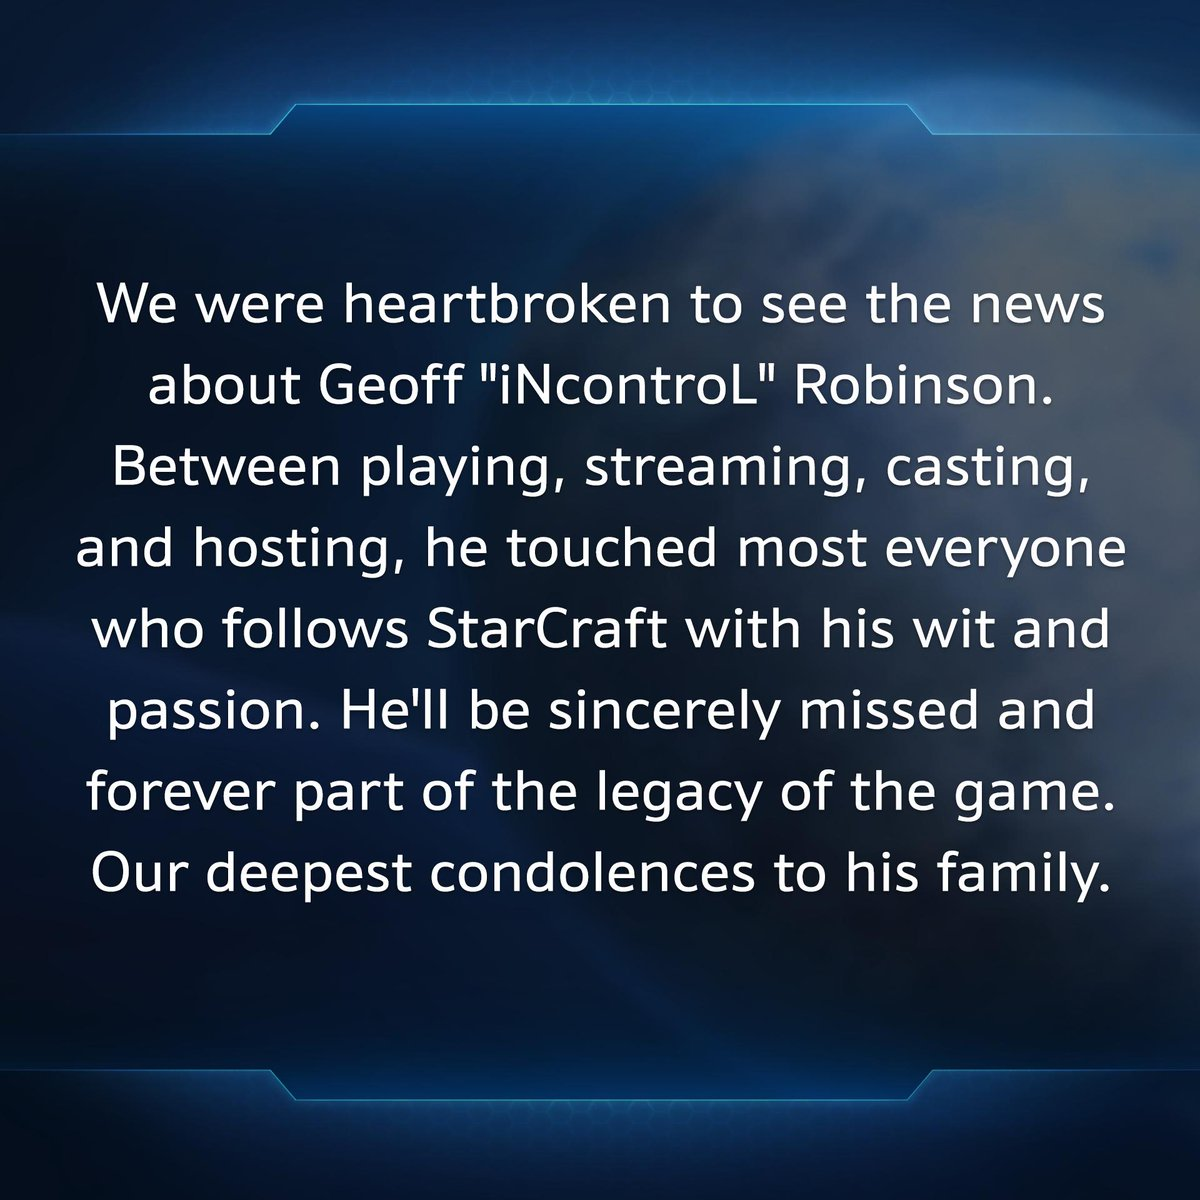 Thank you for everything, Geoff. StarCraft wont be the same without you.